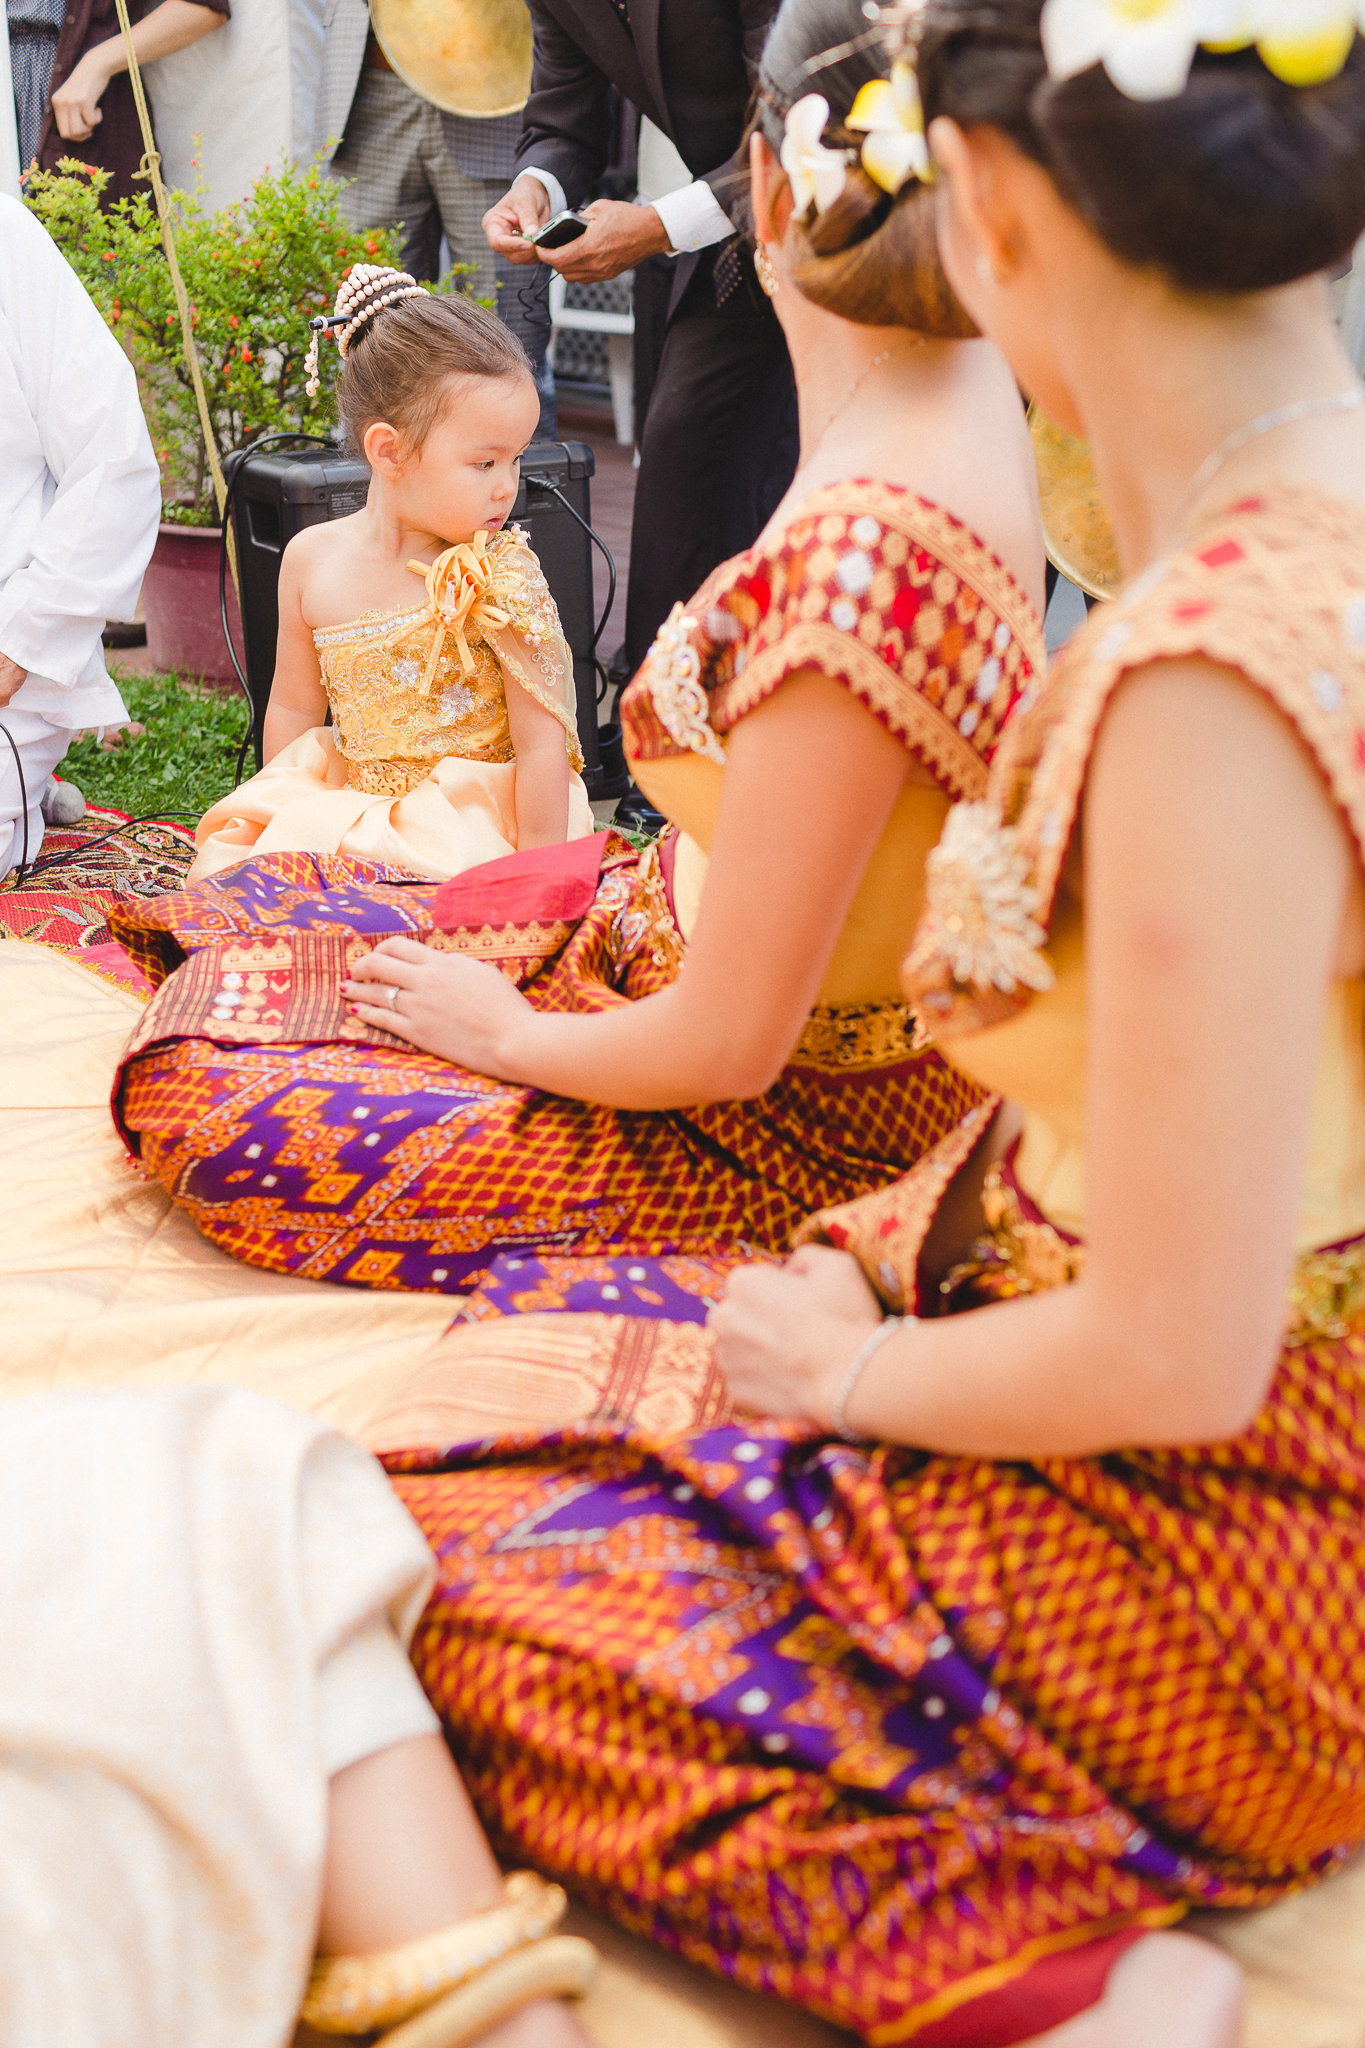 photographe-montreal-mariage-culturel-traditionnel-cambodgien-lisa-renault-photographie-traditional-cultural-cambodian-wedding-26